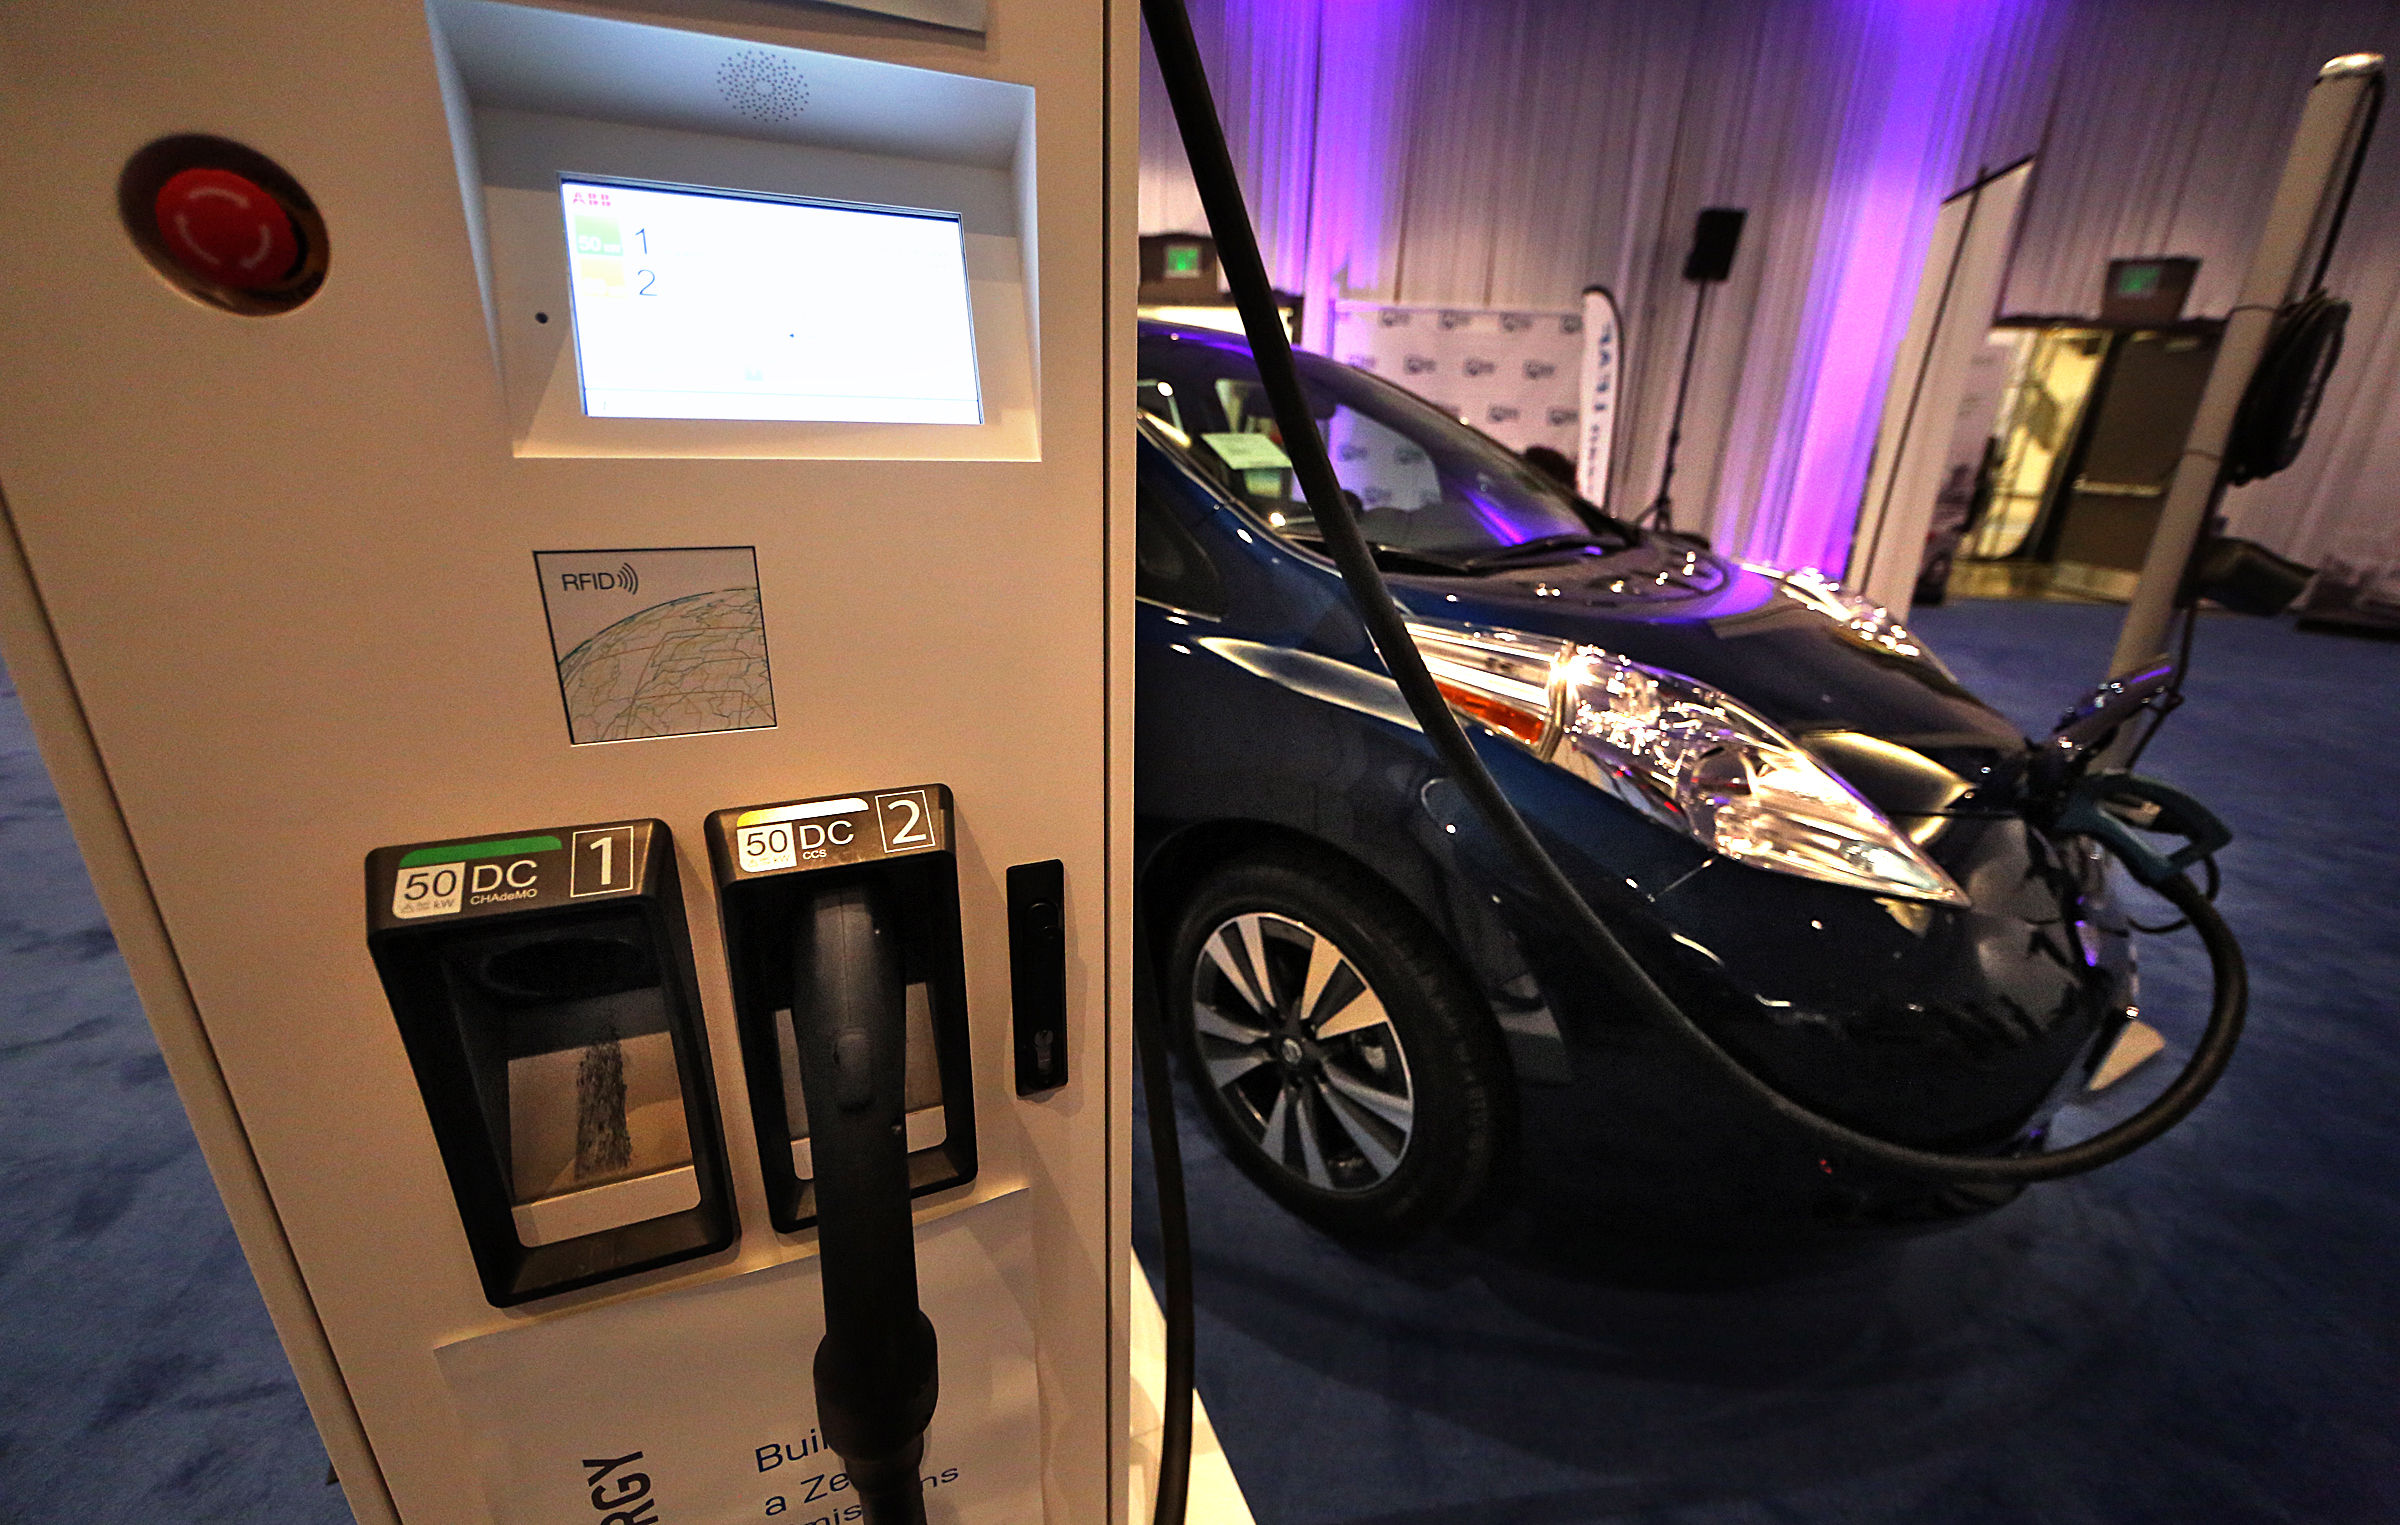 The Nissan LEAF was among the electric automobiles on display in the Electric Room at the Twin Cities Auto Show in 2016.